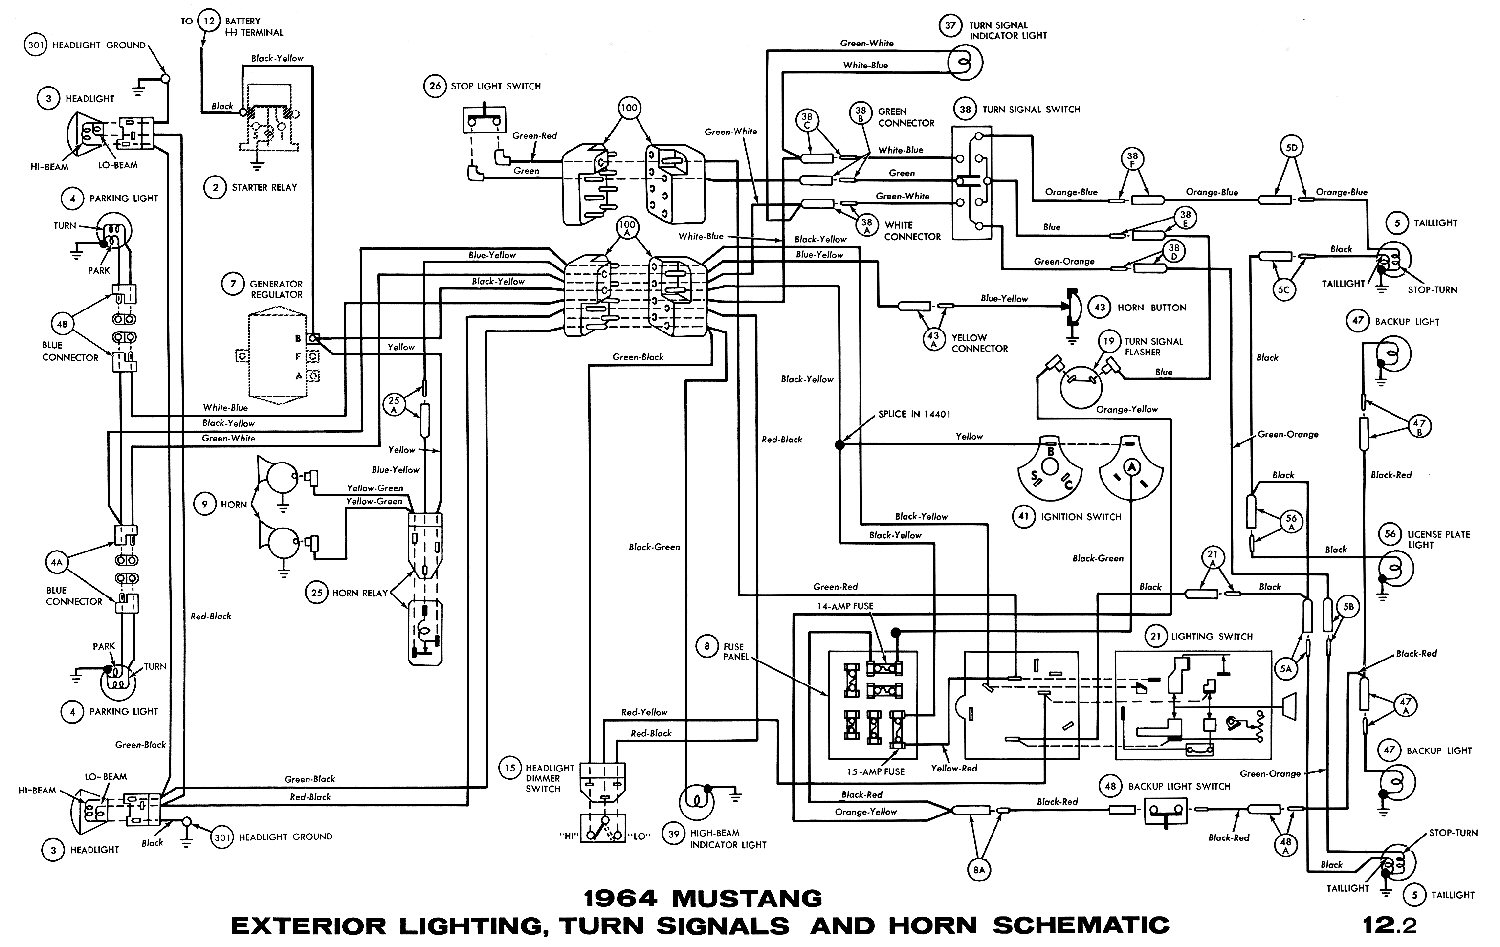 wiring diagram voltage regulator ford with 1964 Mustang Wiring Diagrams on Viewit moreover 2sizo 1995 Ford Explorer Dash Lights Dome Lights further US20110172966 also H2 Hummer Wiring Diagram For Seat further Alt install.